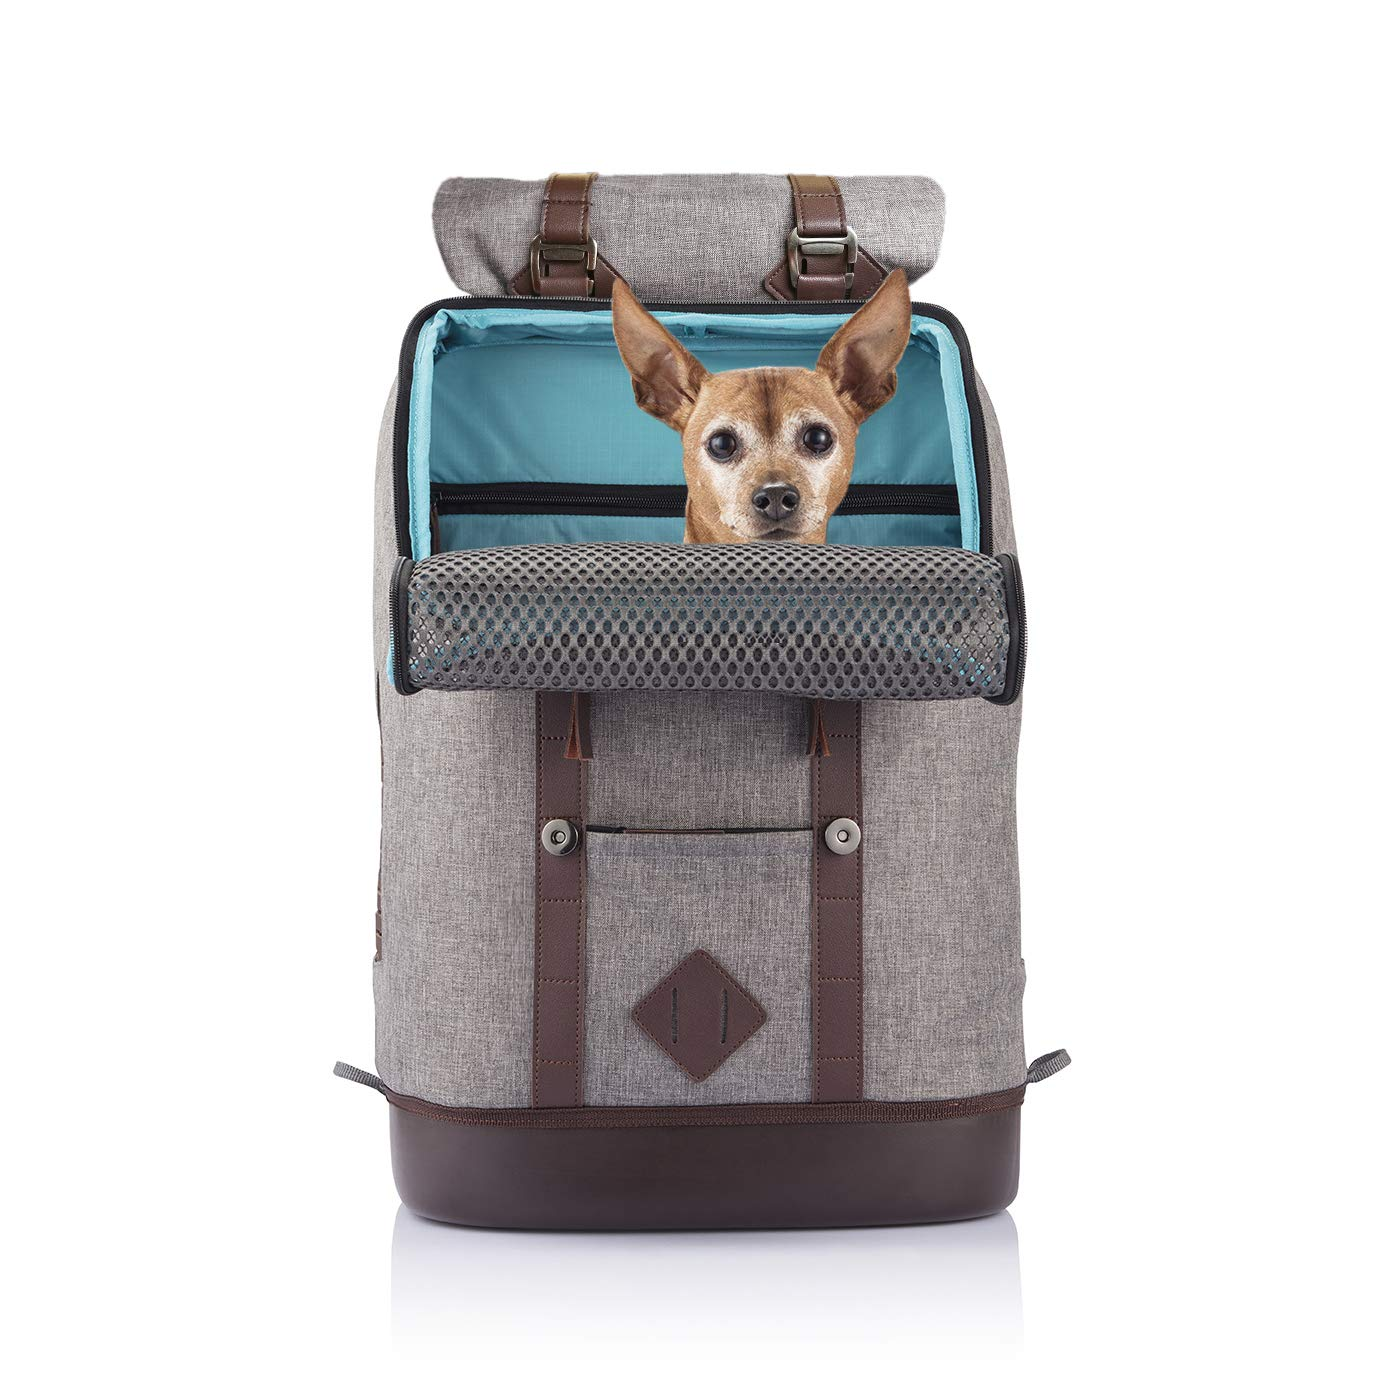 Kurgo Dog Carrier Backpack for Small Pets - Dogs & Cats | TSA Airline Approved | Cat | Hiking or Travel | Waterproof Bottom | G-Train | K9 Ruck Sack | Red | Grey (Heather Charcoal Grey) by Kurgo